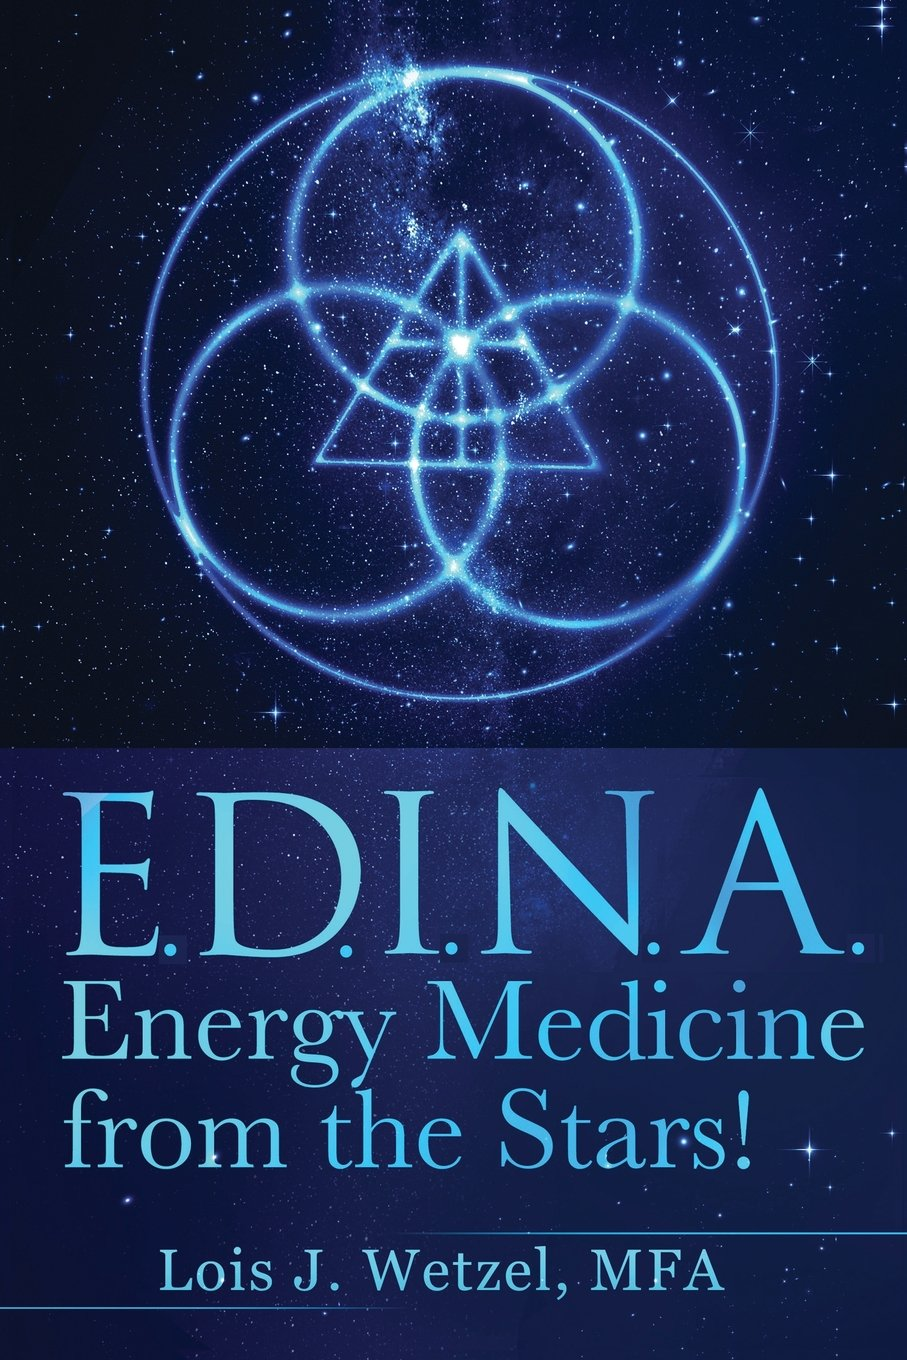 E.D.I.N.A. – Energy Medicine from the Stars